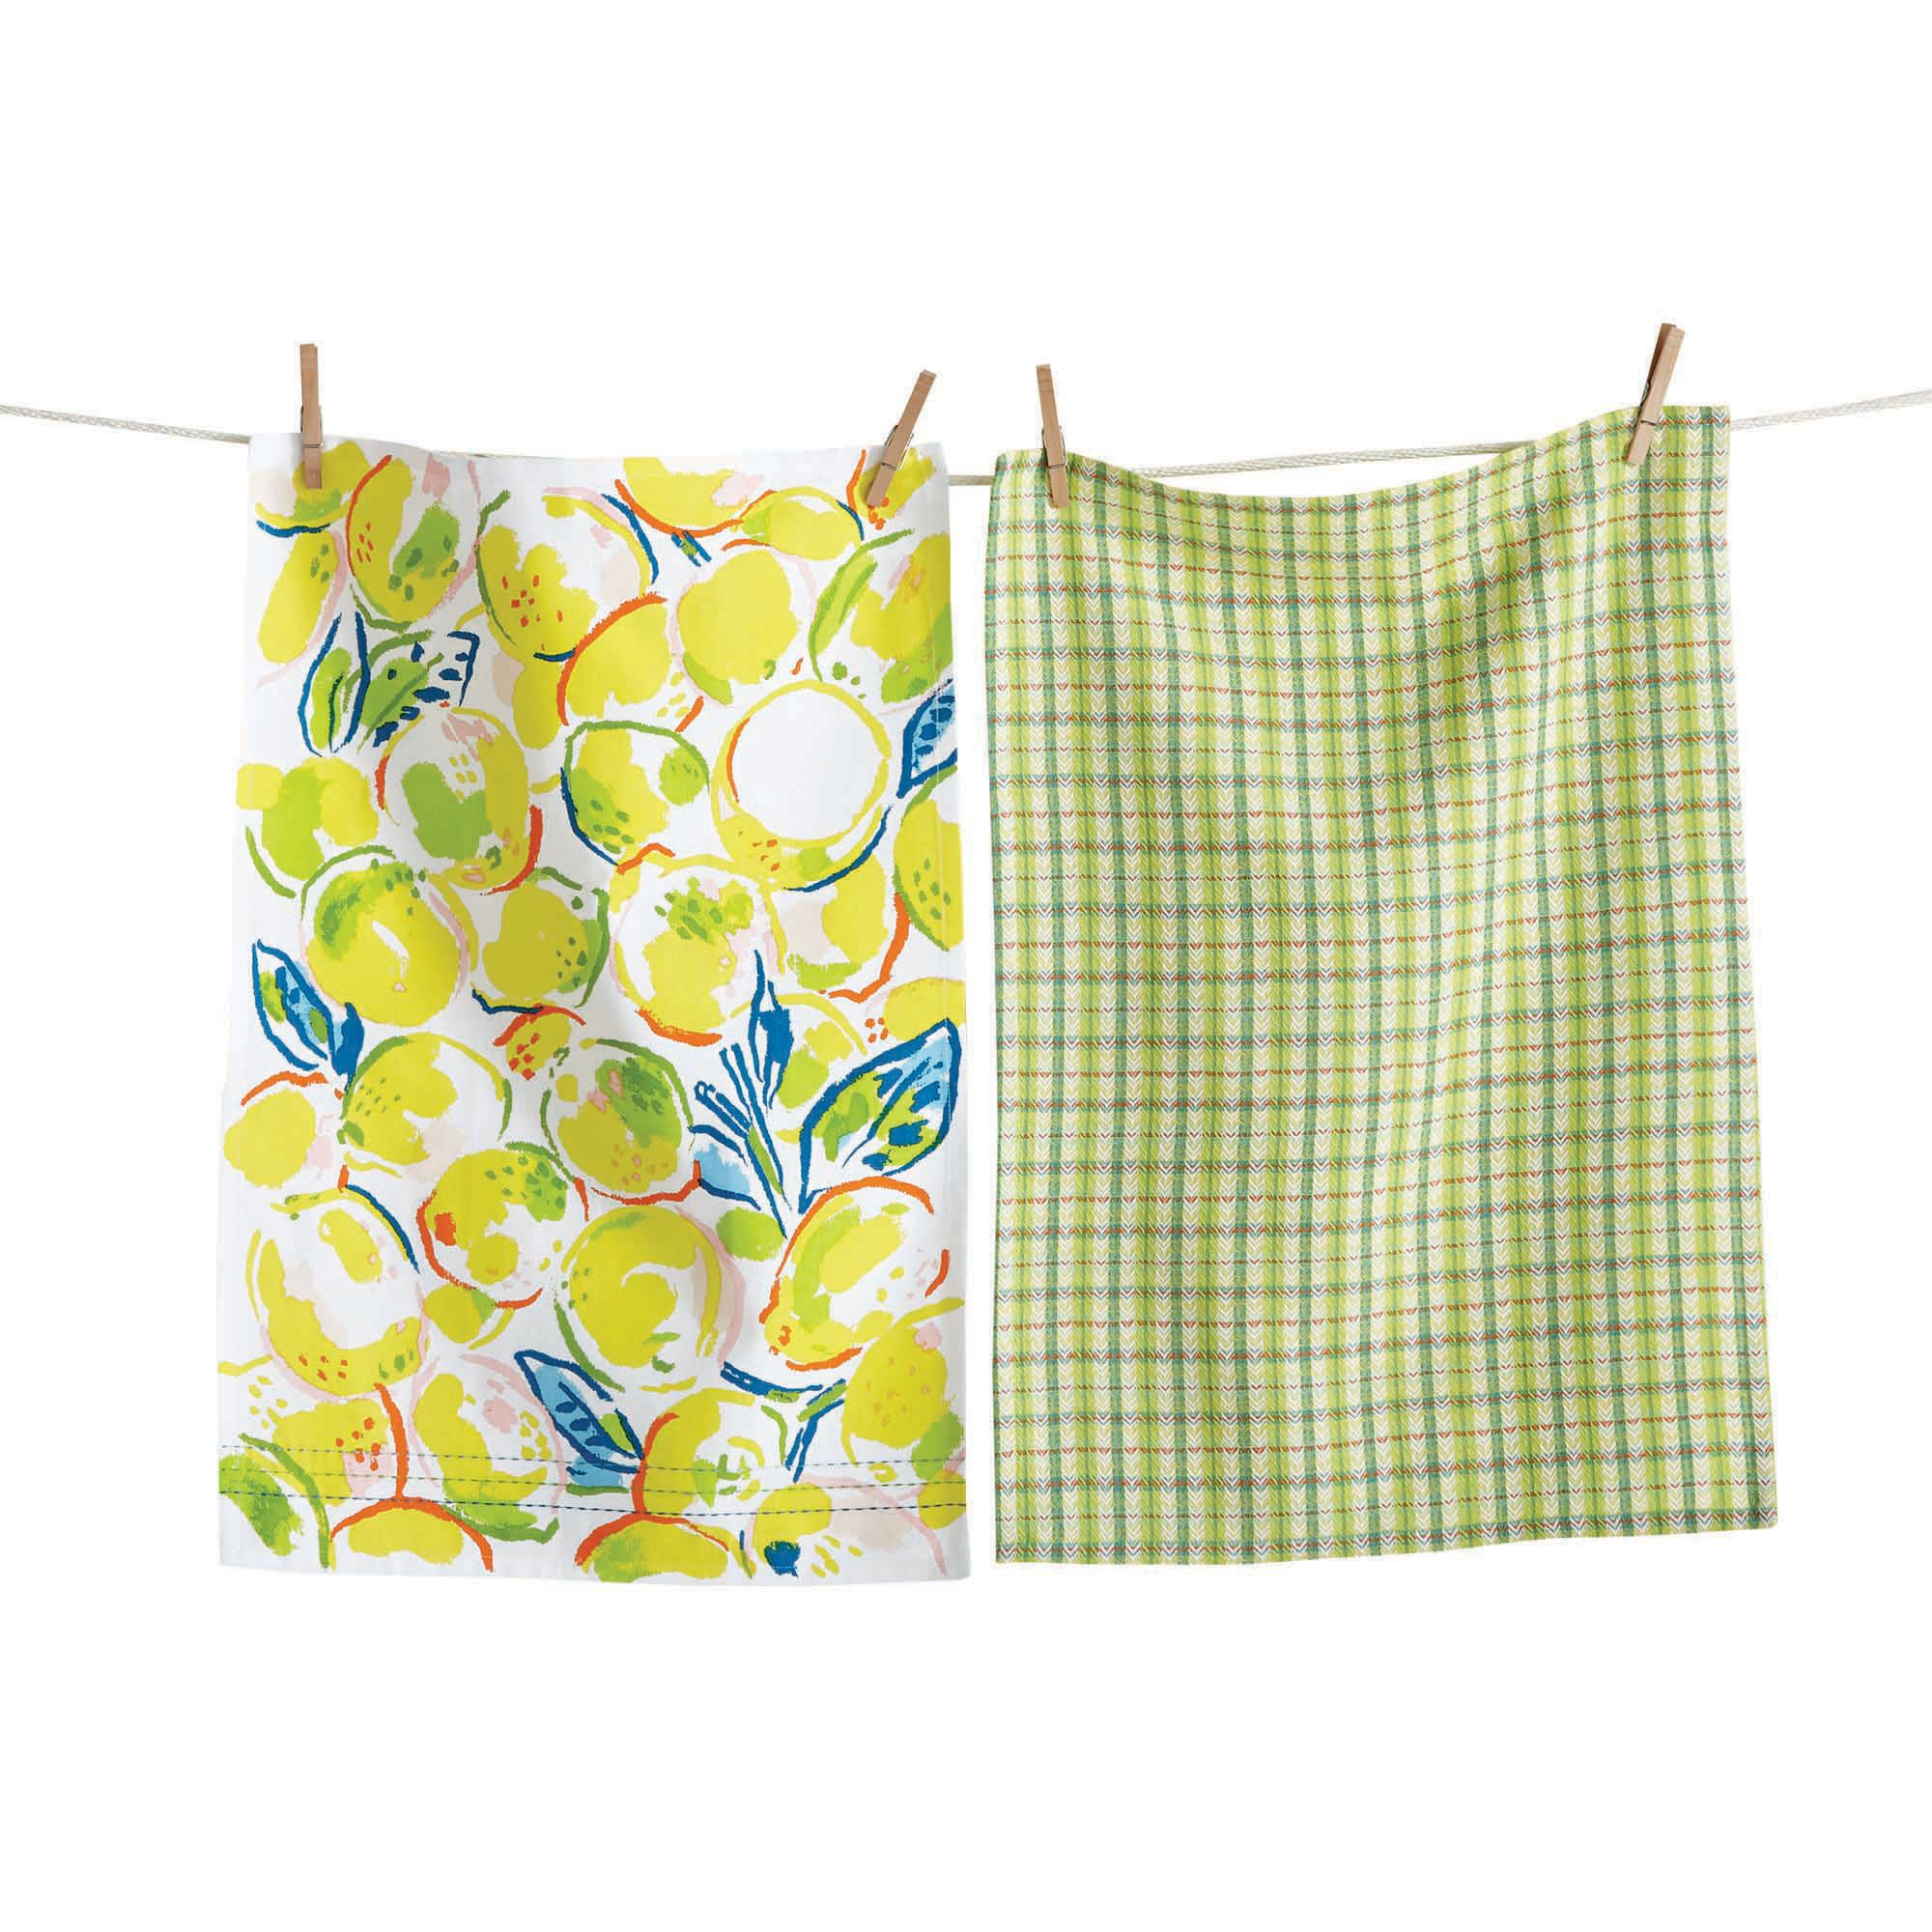 Lemons Dishtowel S 2 Dish Towel Set Dish Towels Towel Set